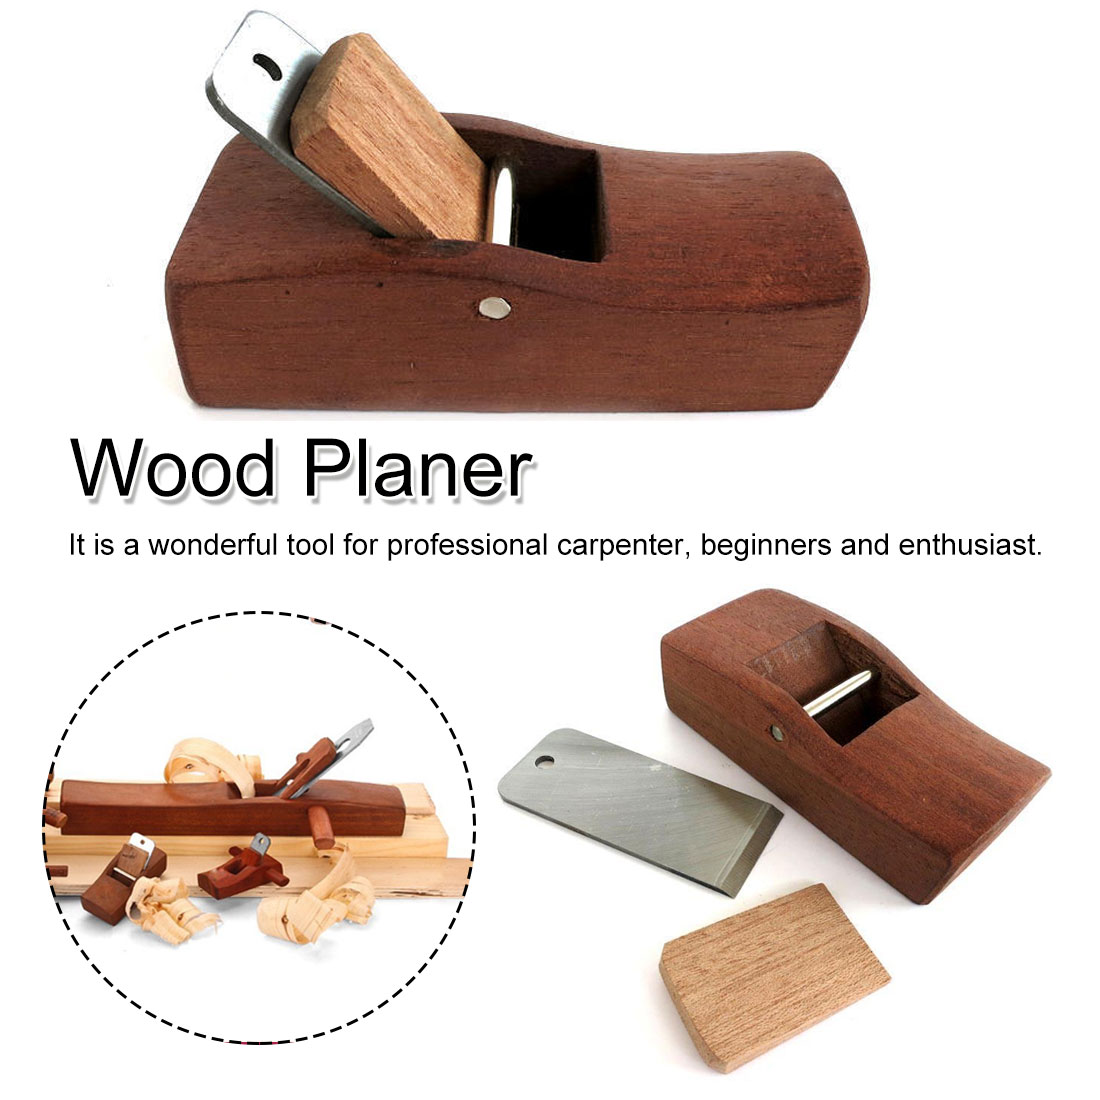 Hand Plane Wood Planer Flat Plane Bottom Edge Planer Blades Woodworking Plane For Carpenter Woodcraft Tool